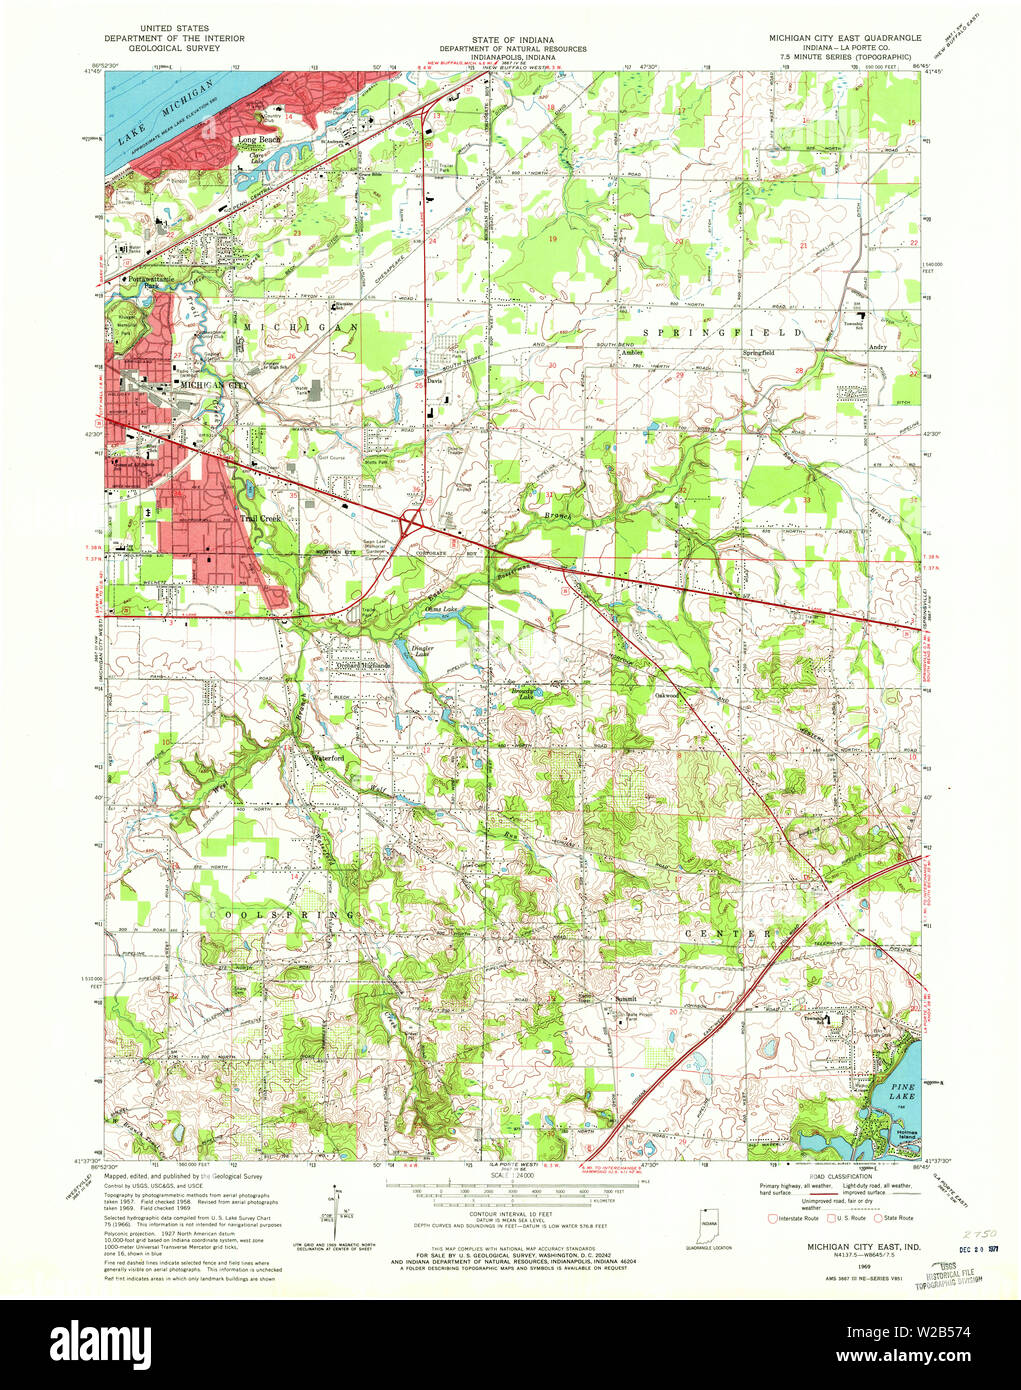 USGS TOPO Map Indiana IN Michigan City East 160672 1969 ... Map Michigan City Indiana on trail creek indiana map, weather lansing michigan map, mongo indiana map, usa map, south bend indiana map, hammond indiana map, michigan city apartments, michigan city area map, burlington indiana map, wawasee indiana map, wisconsin indiana map, tell city map, michigan city lighthouse, saturn indiana map, waynetown indiana map, michigan border map, united states indiana map, gardner indiana map, michigan city in map, bethel college indiana map,